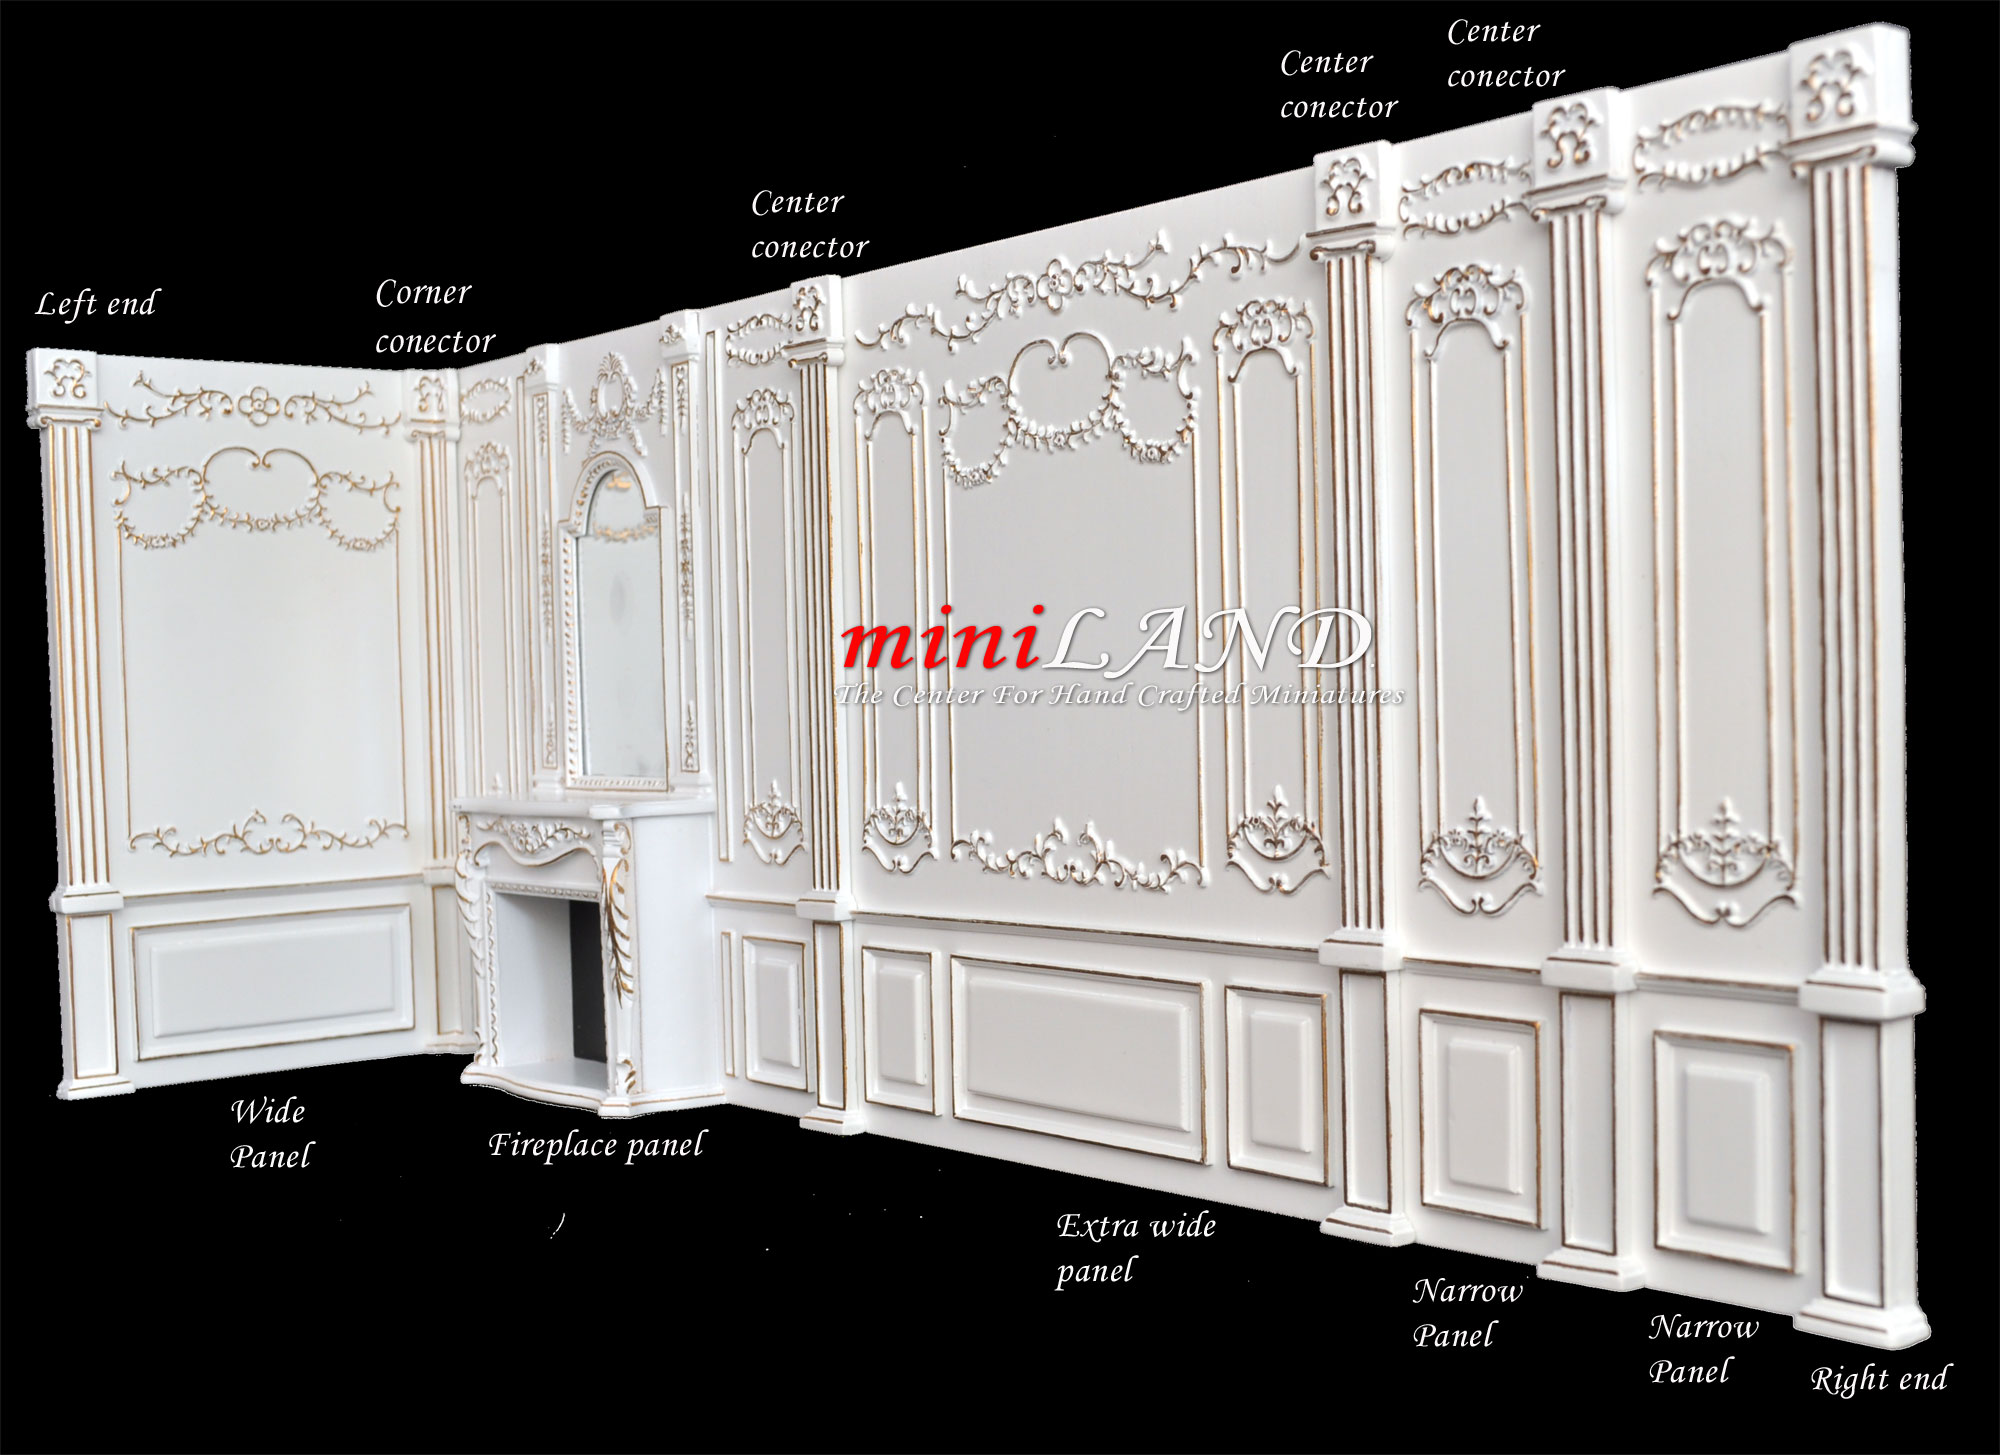 Columns Corners Centers Ends Royal Paneling Line White